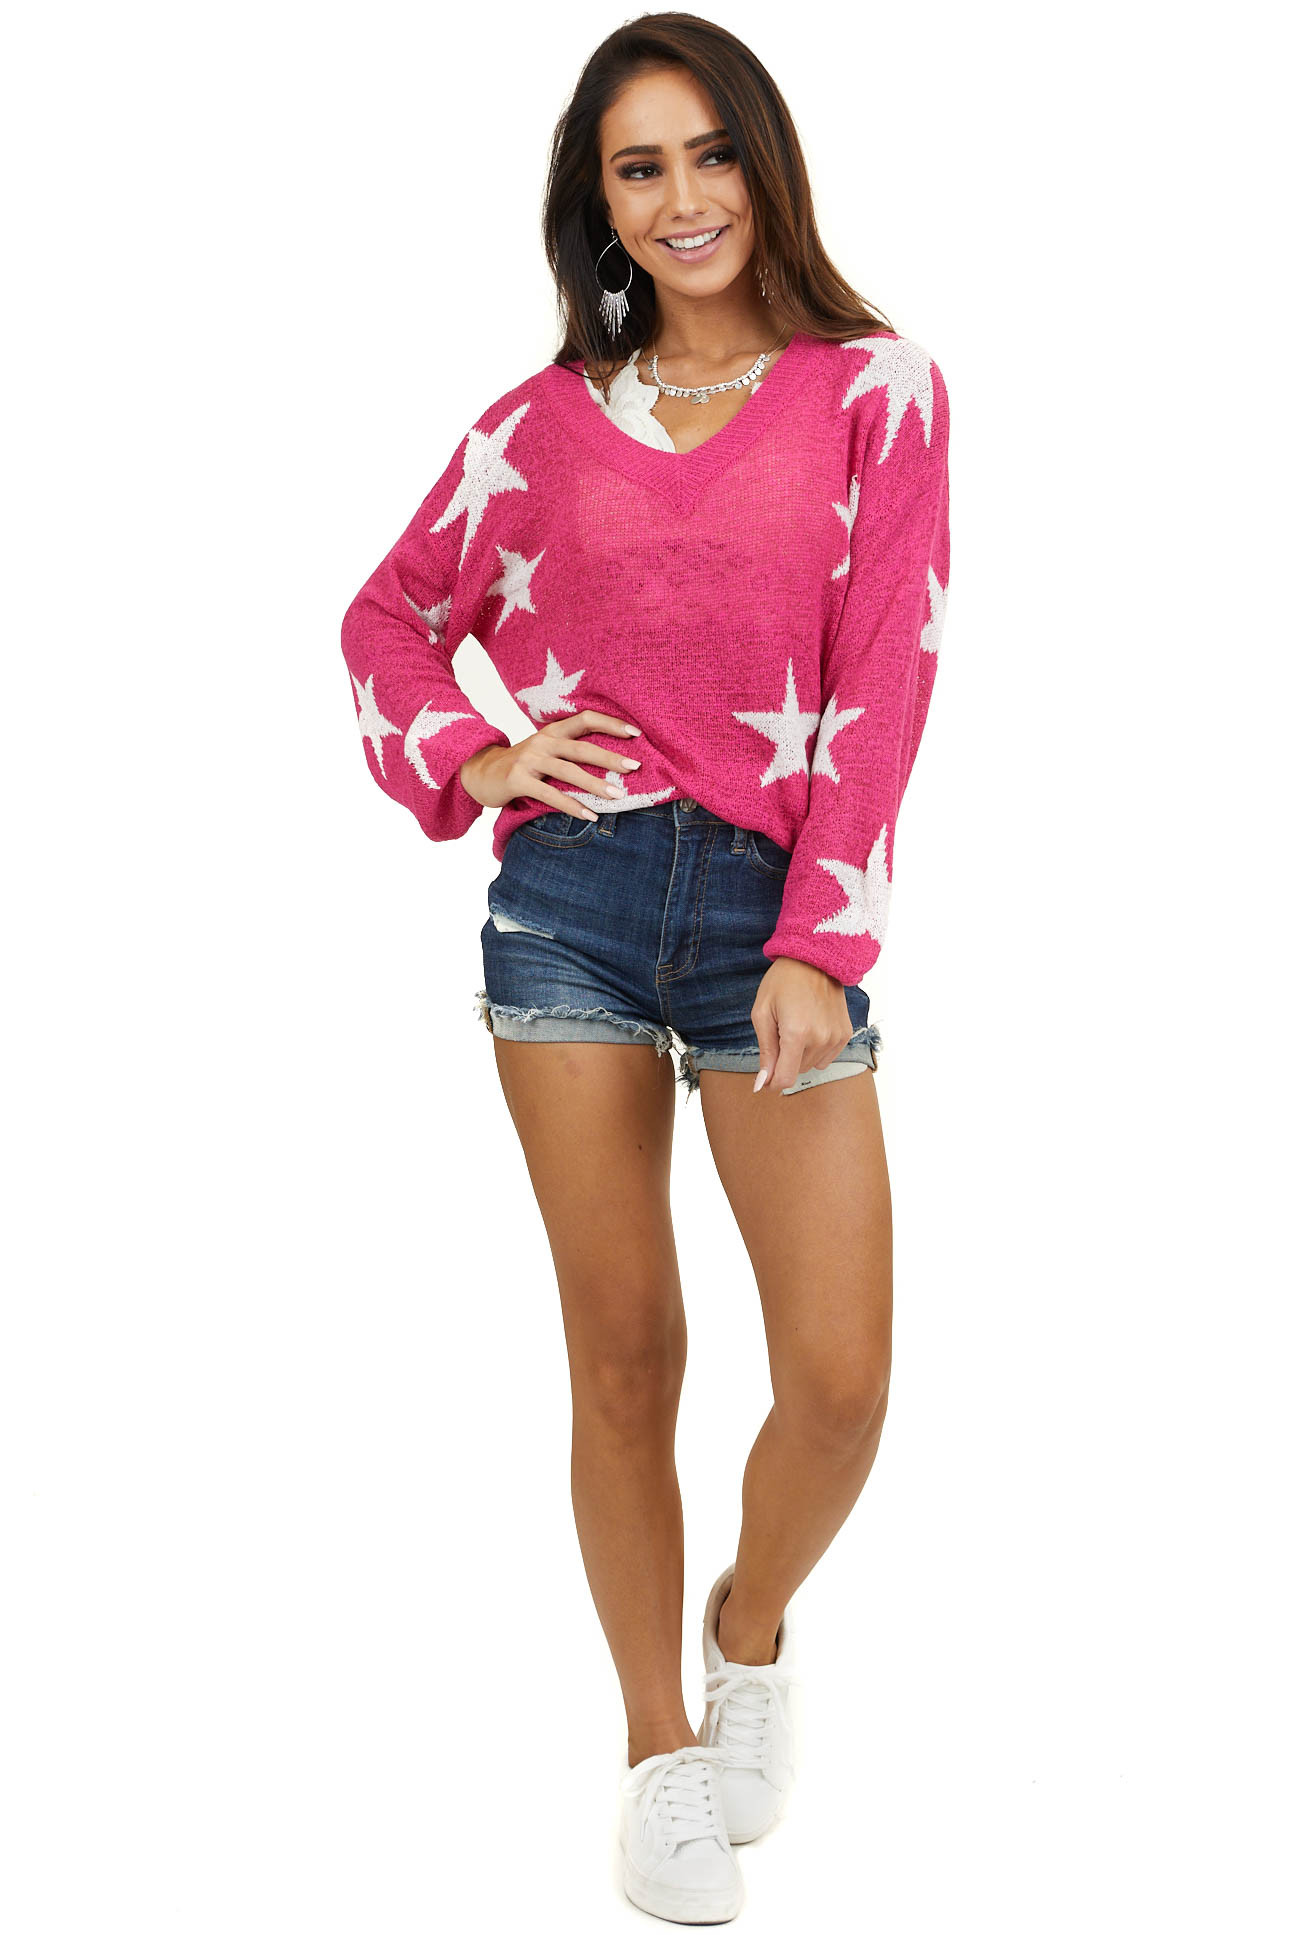 Fuchsia V Neck Long Sleeve Loose Knit Sweater with Stars